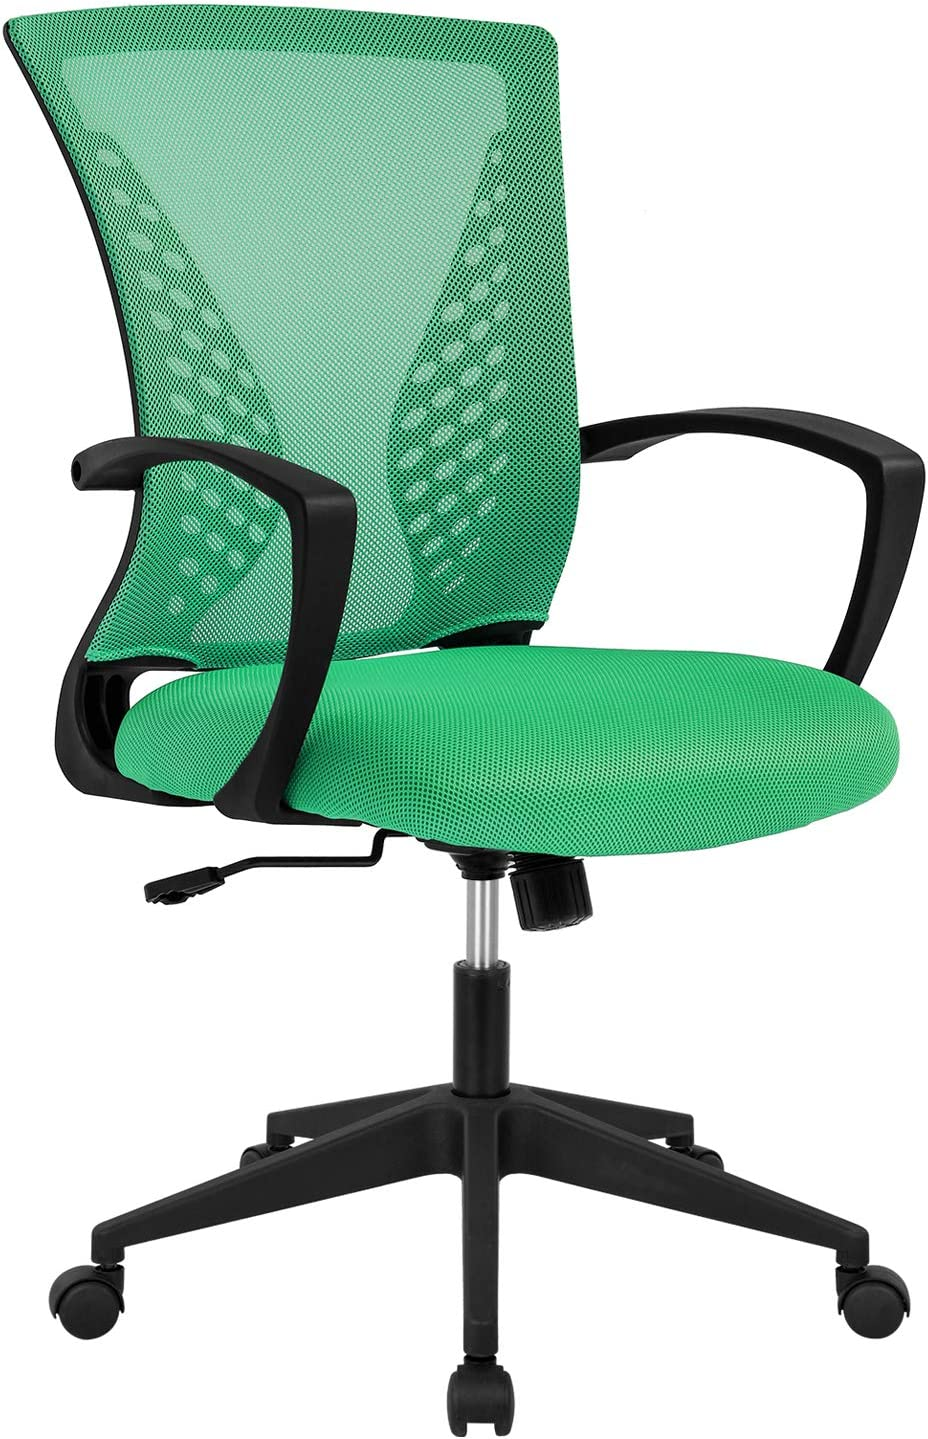 Ergonomic Office Chair Desk Computer Mesh Executive Task Rolling Gaming Swivel Modern Adjustable with Mid Back Lumbar Support Armrest for Home Women Men,Green